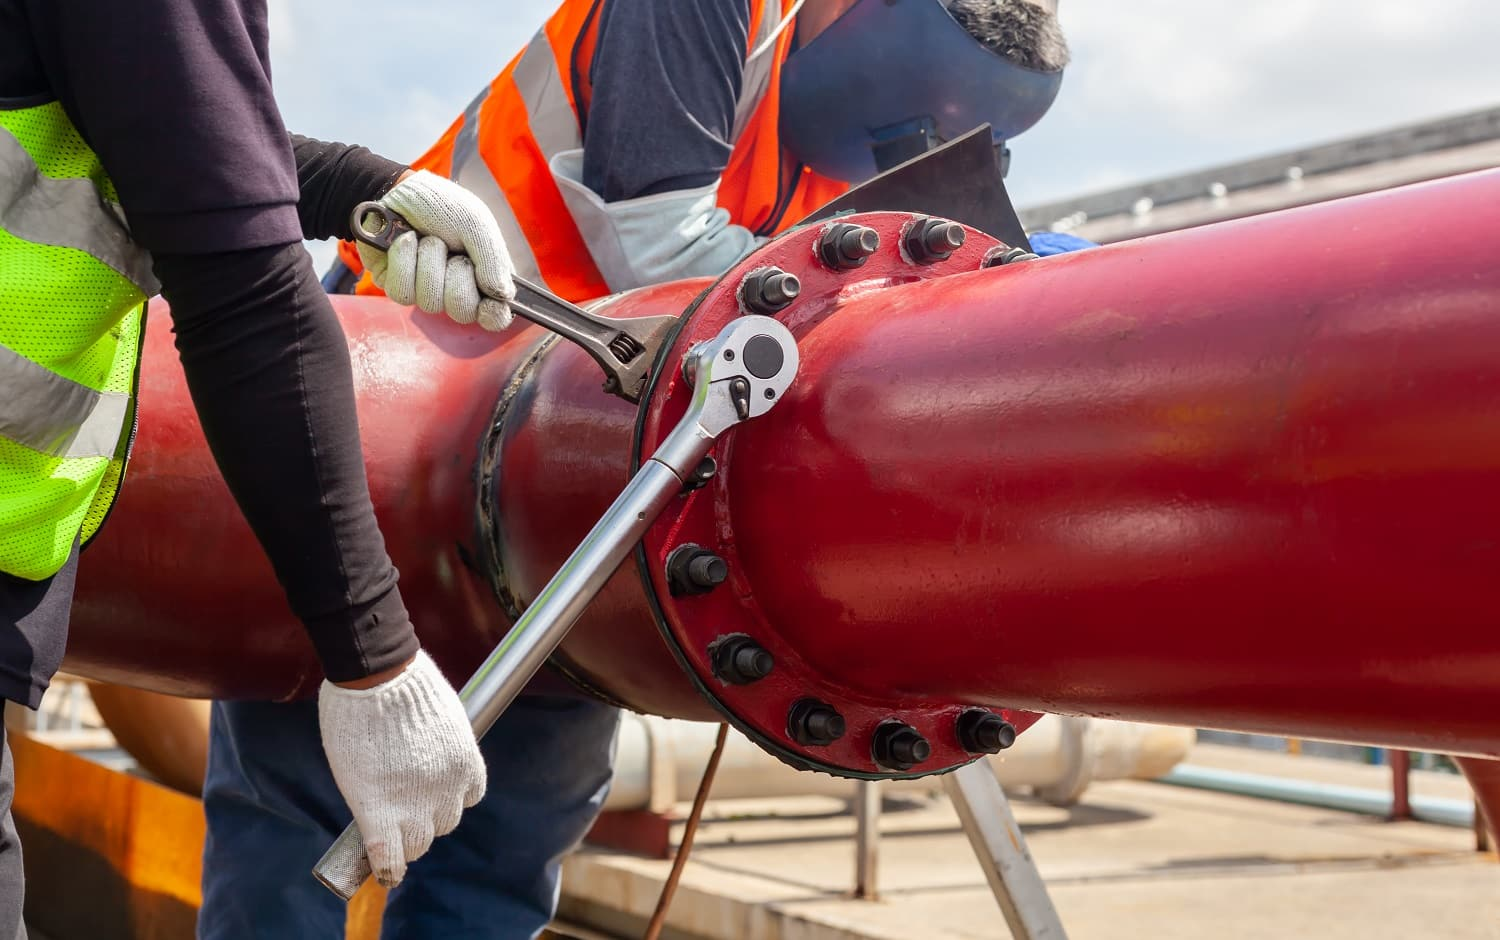 Worker install Tightening bolts & Nuts of piping Flange system. In the industrial plant.